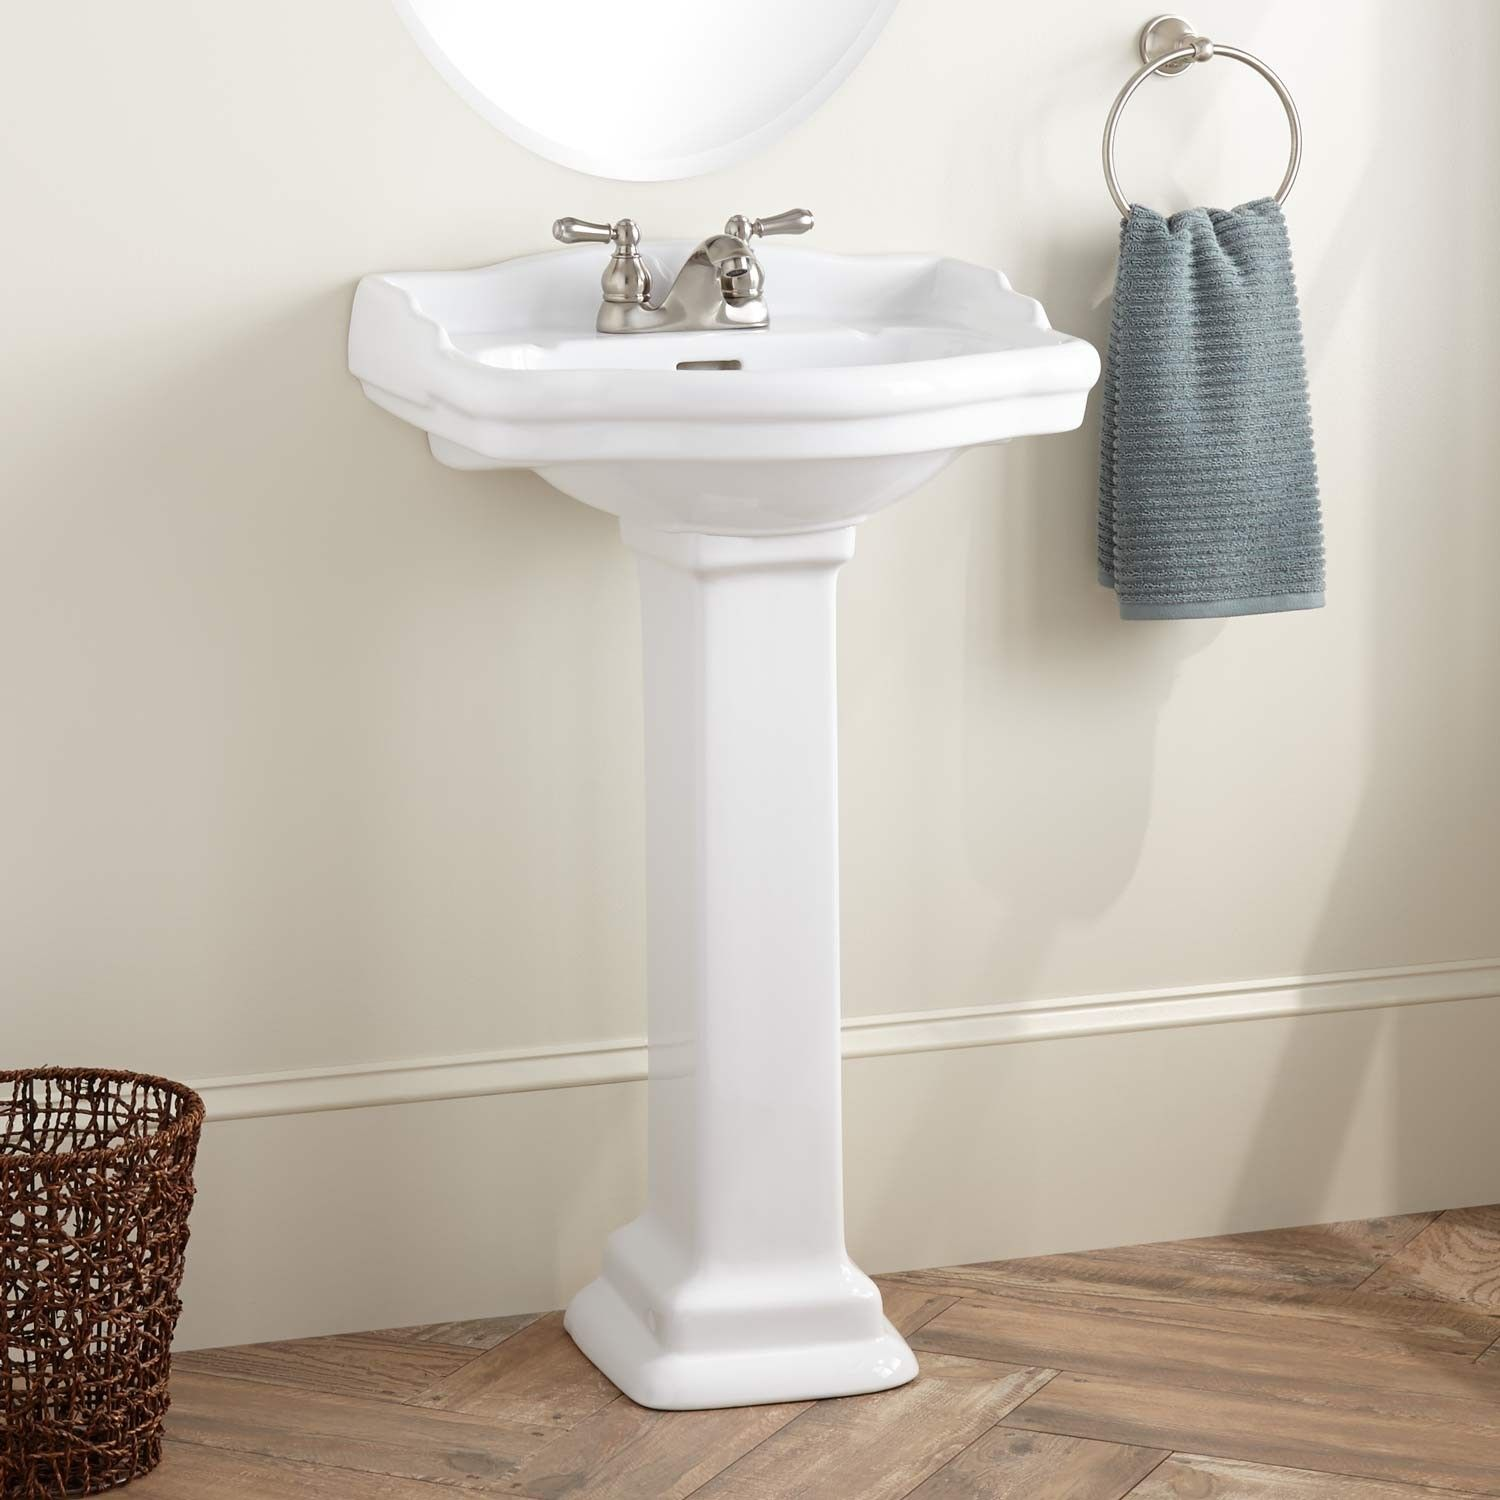 porcelain biscuit pedestal a traditional round bathroom the standing ideas free small mini makes sink modern